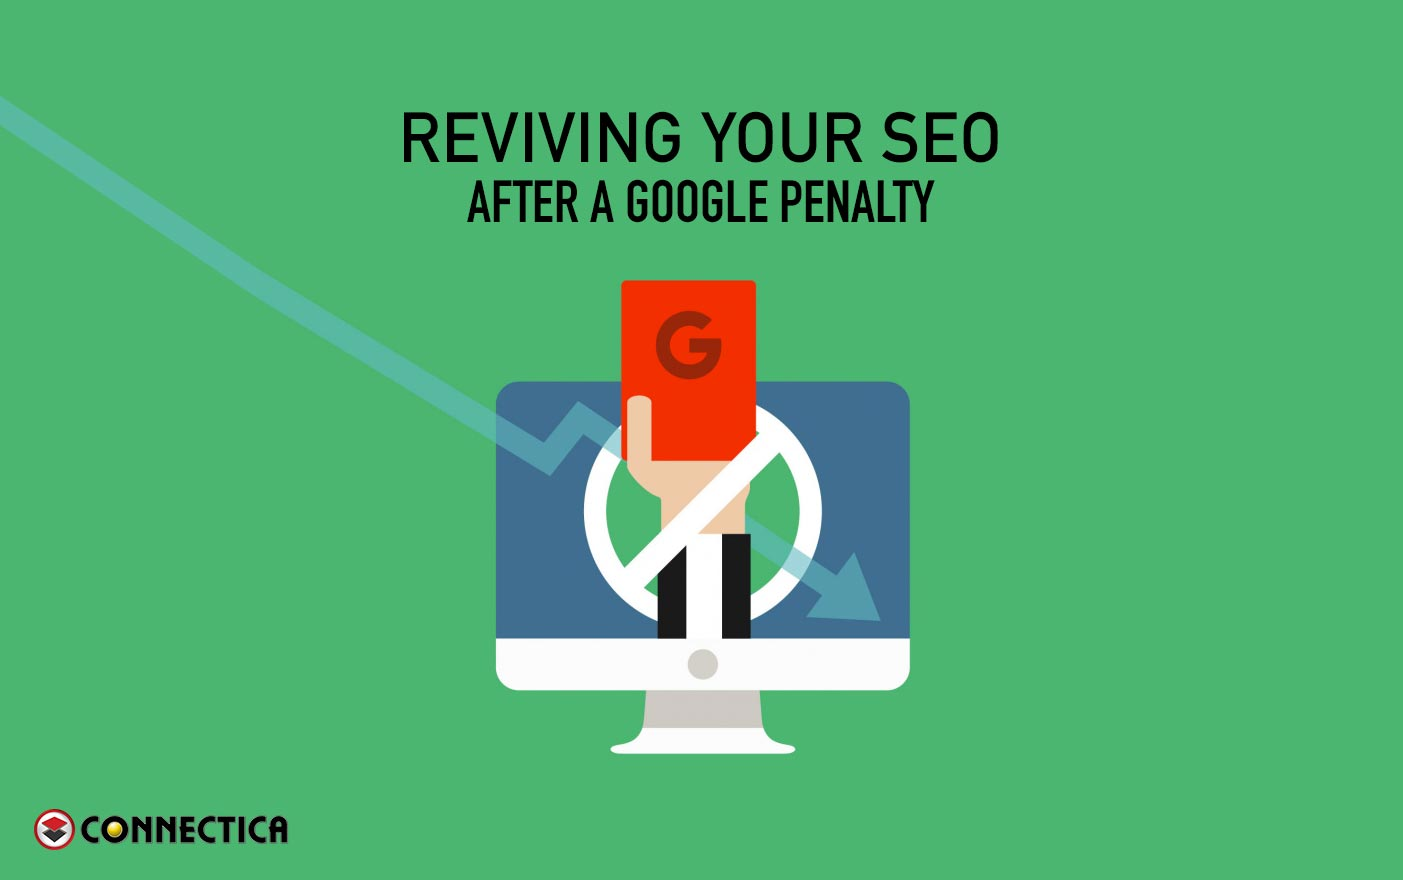 Reviving Your SEO After A Google Penalty